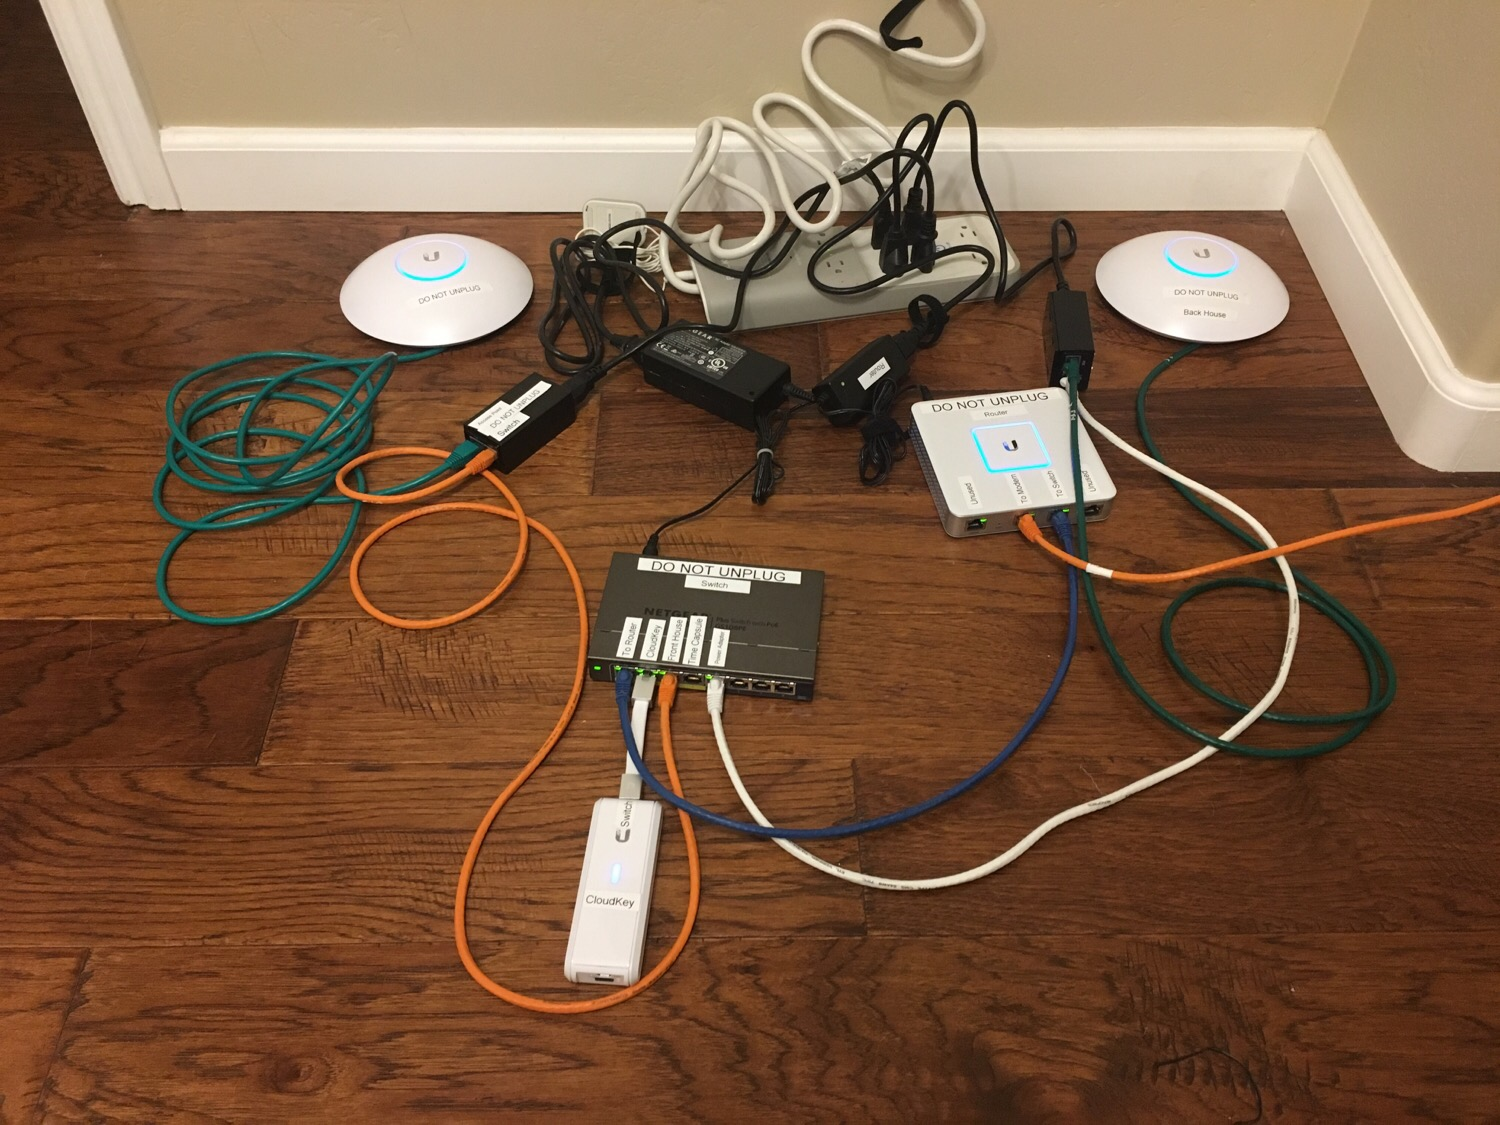 Curing home Internet problems with UniFi gear – Scott Gruby's Blog